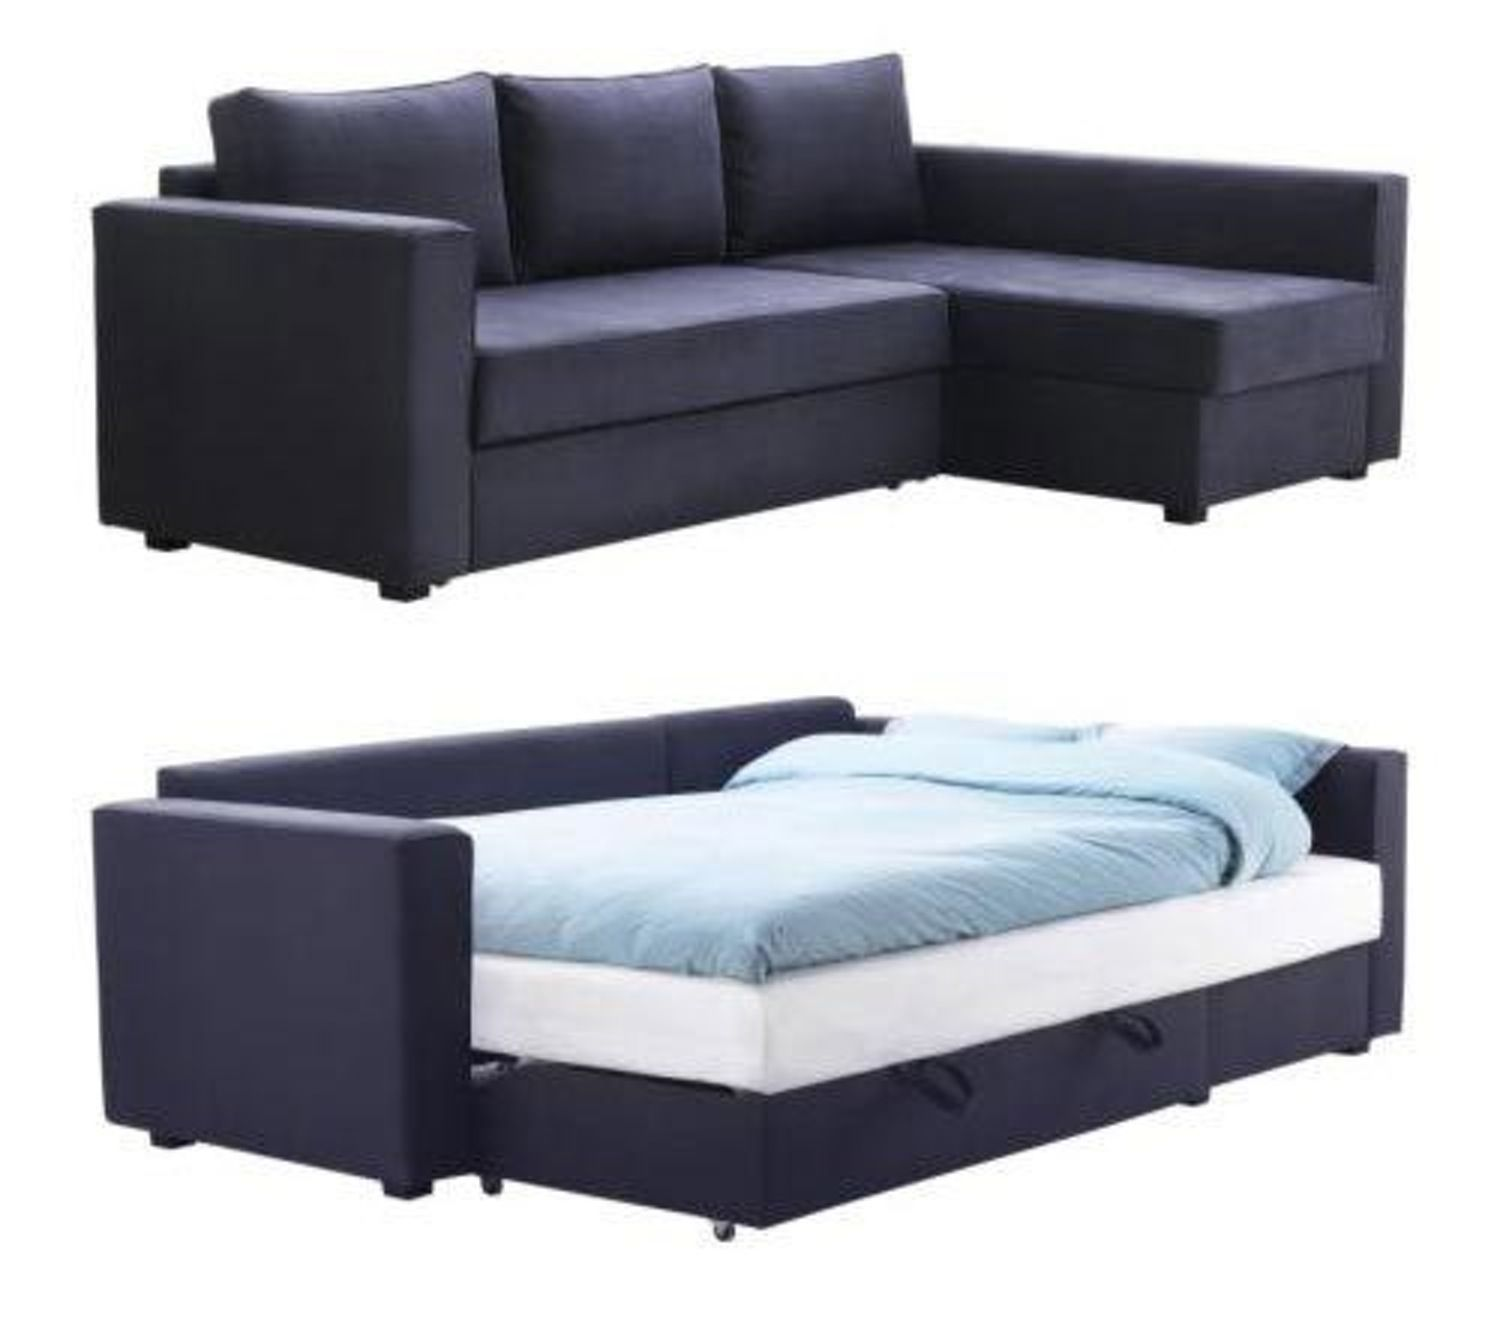 Small Sectional Sofa Beds In 2020 With Images Sofa Bed With